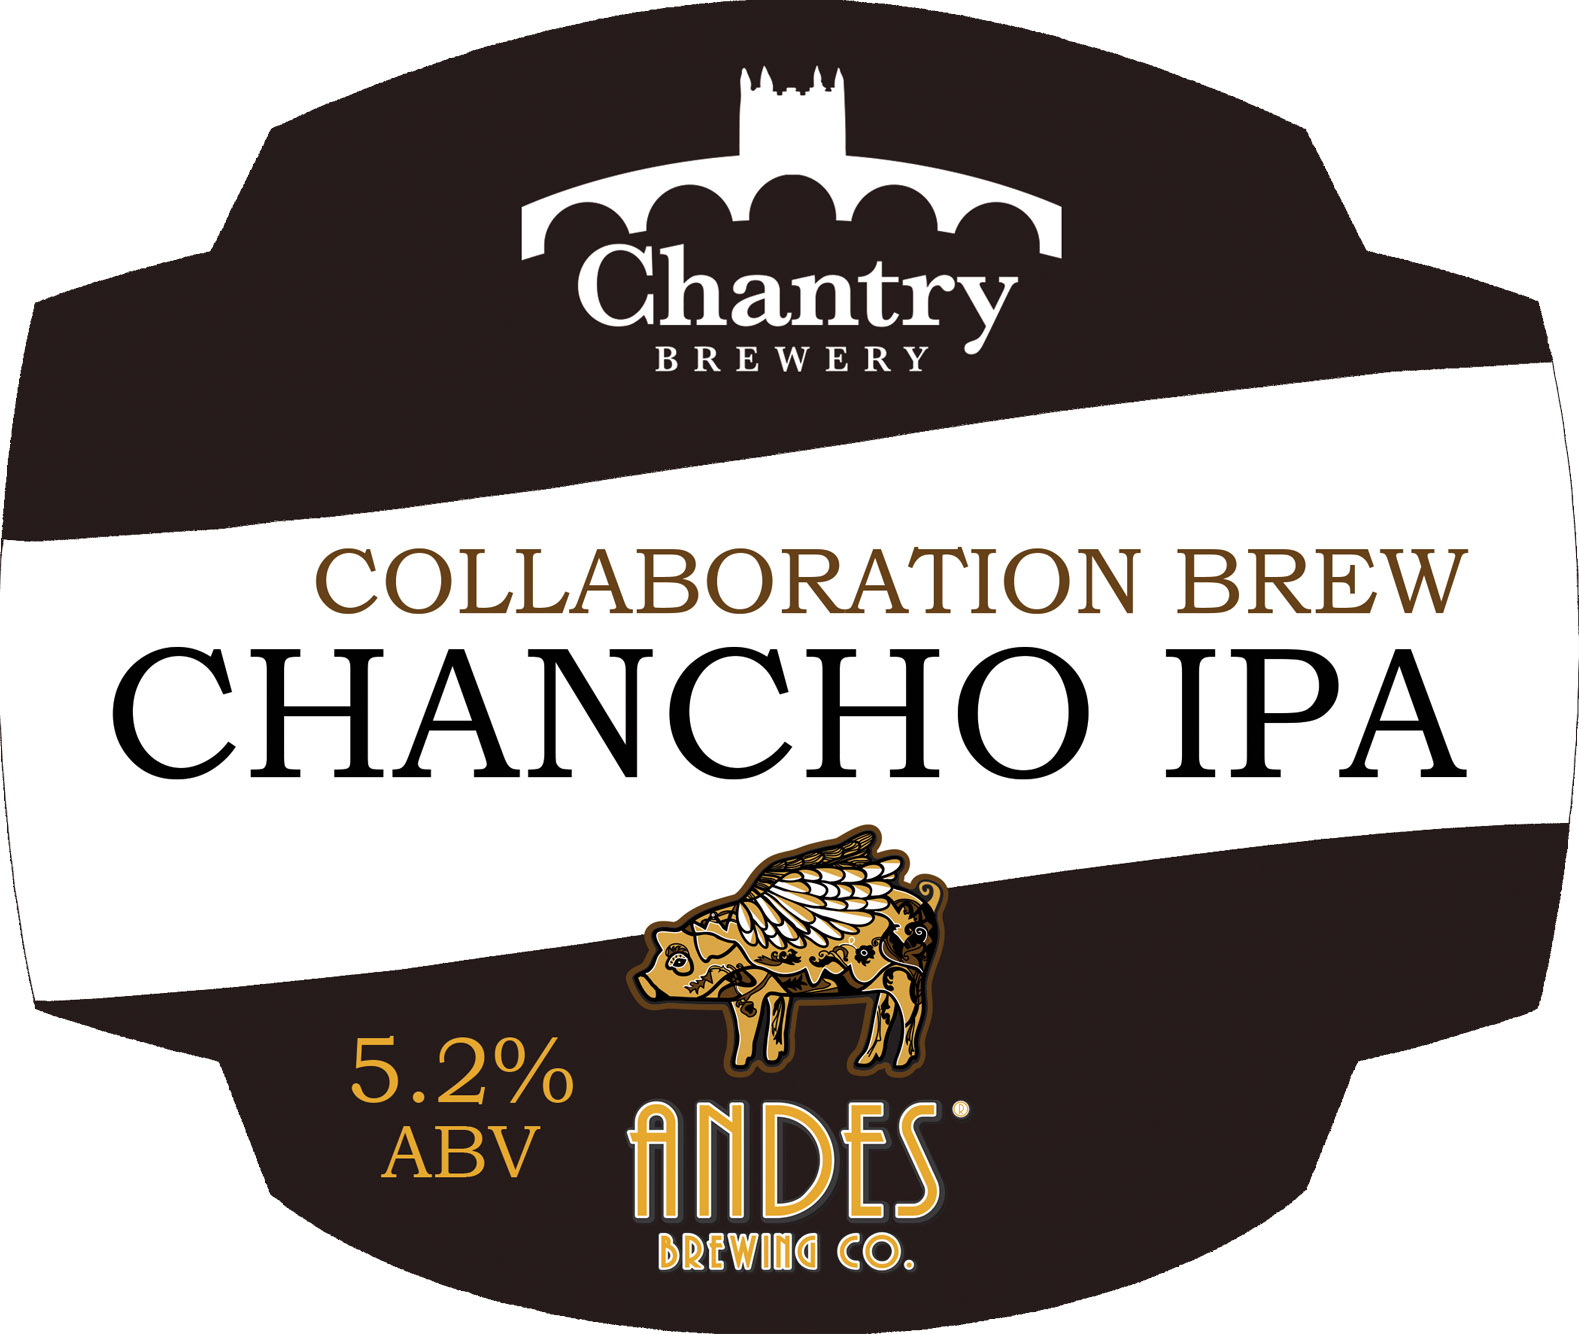 Chantry Brewery Chancho IPA